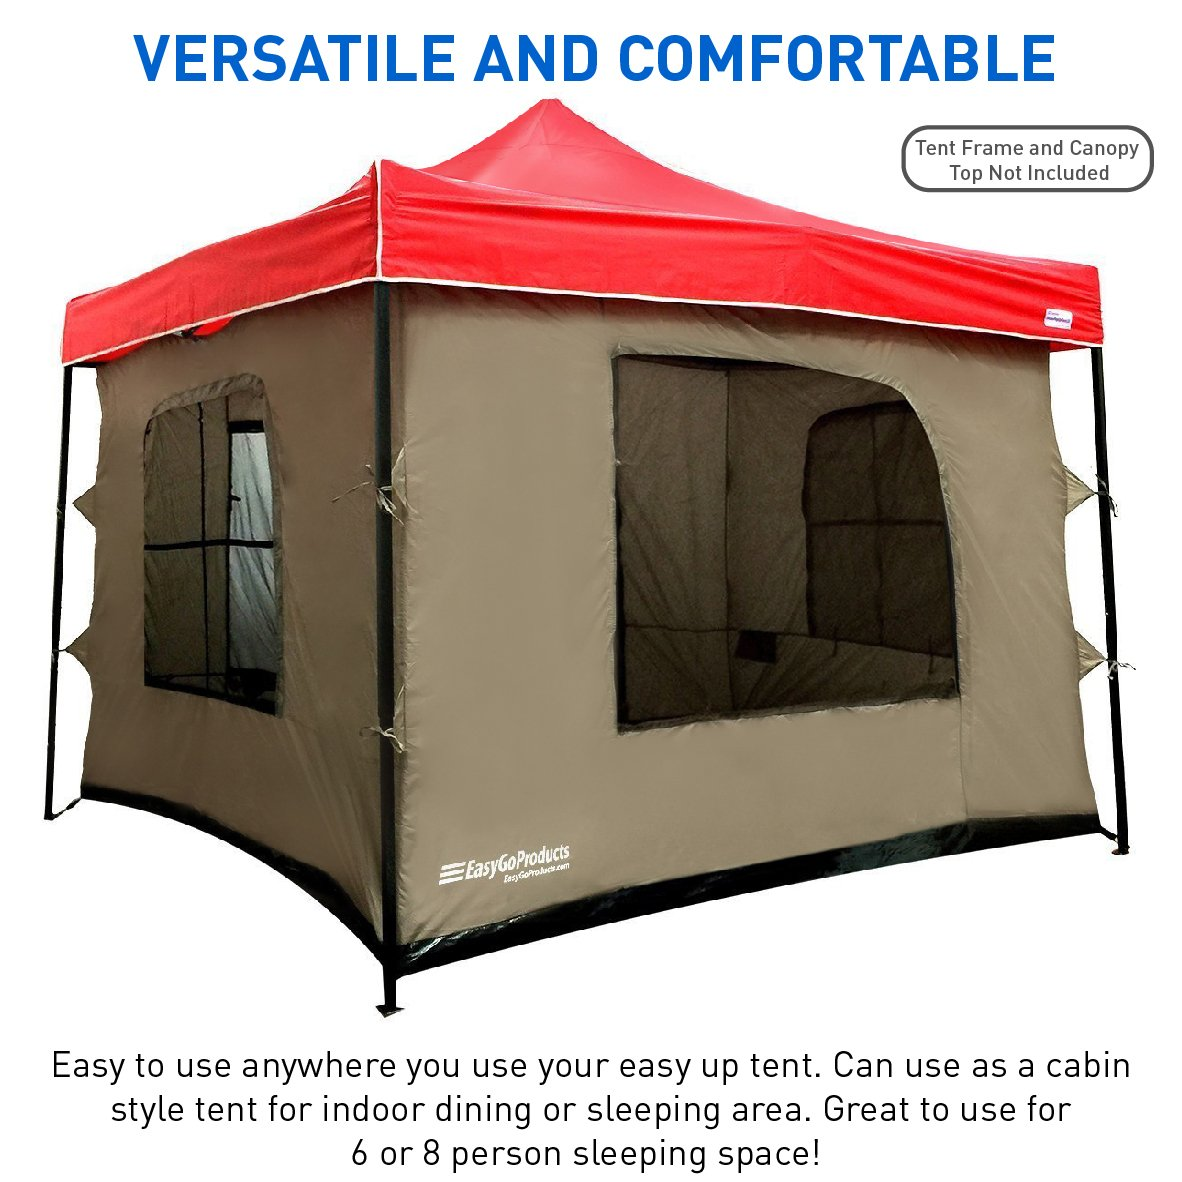 Beau Amazon.com : Camping Tent Attaches To Any 10u0027x10u0027 Easy Up Pop Up Canopy Tent  With 4 Walls, PVC Floor, 2 Doors And 4 Windows   Solid Roof   Standing Tent  ...